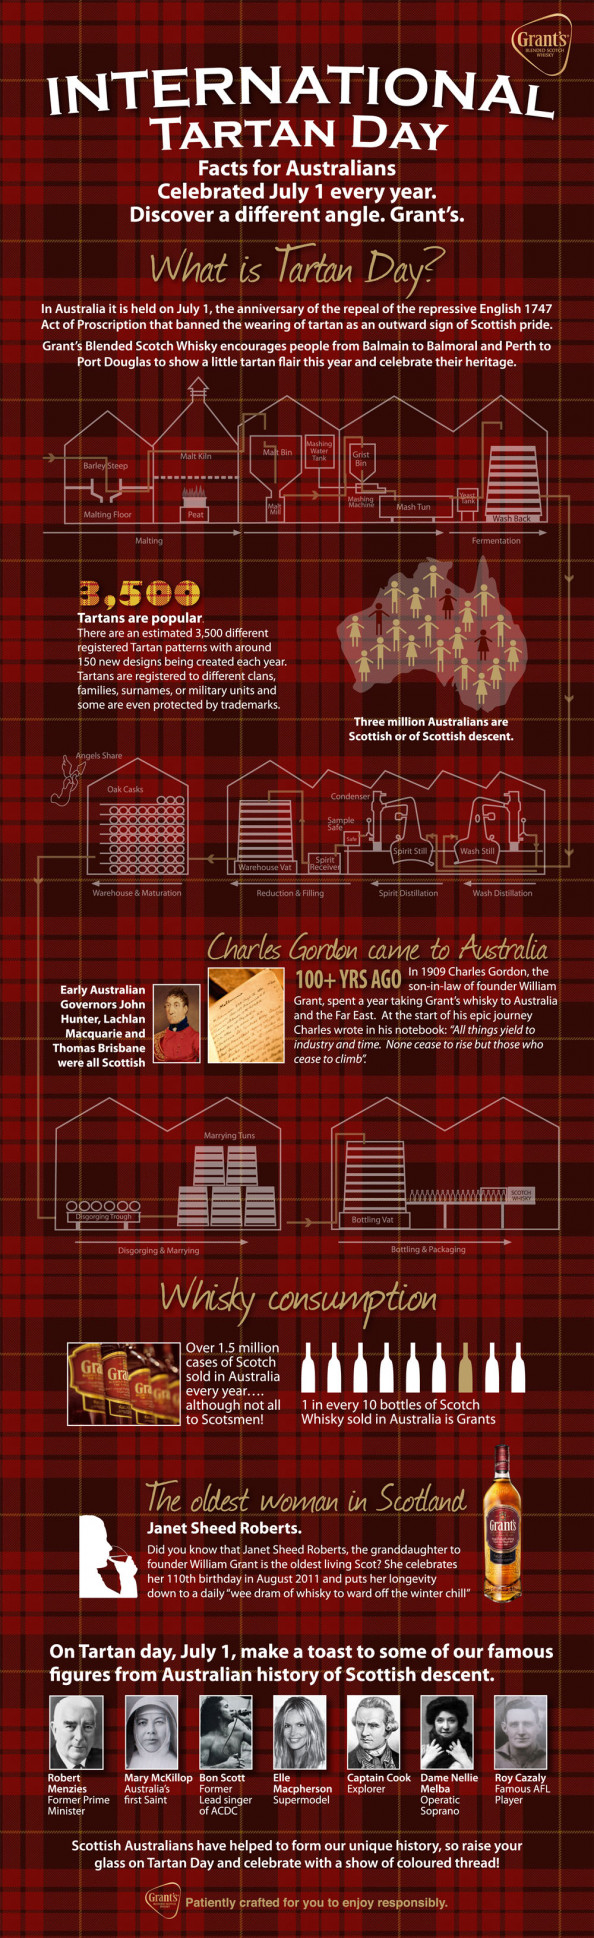 International Tartan Day Infographic